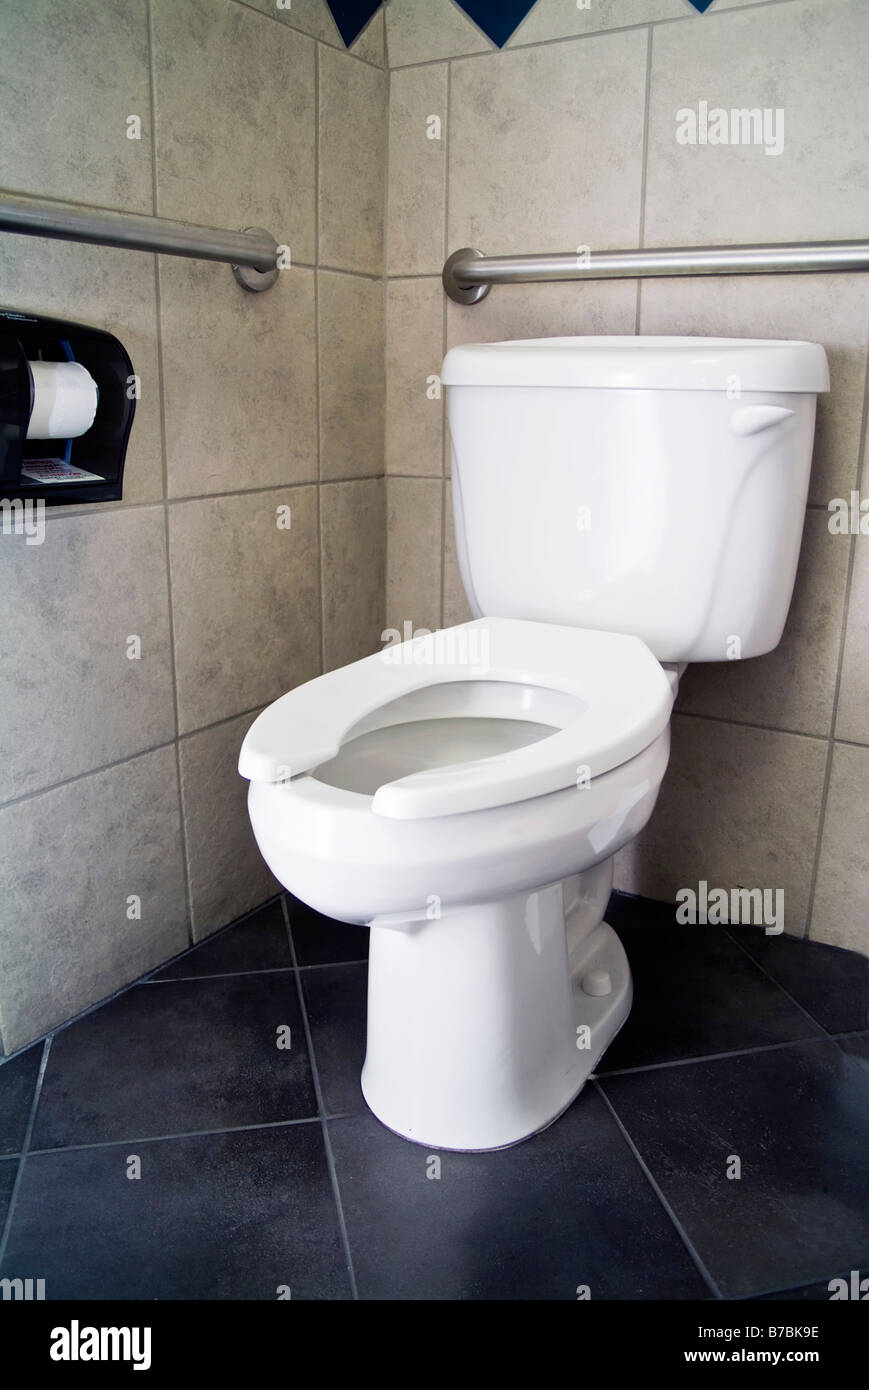 Commode Toilet Stock Photos Commode Toilet Stock Images Alamy